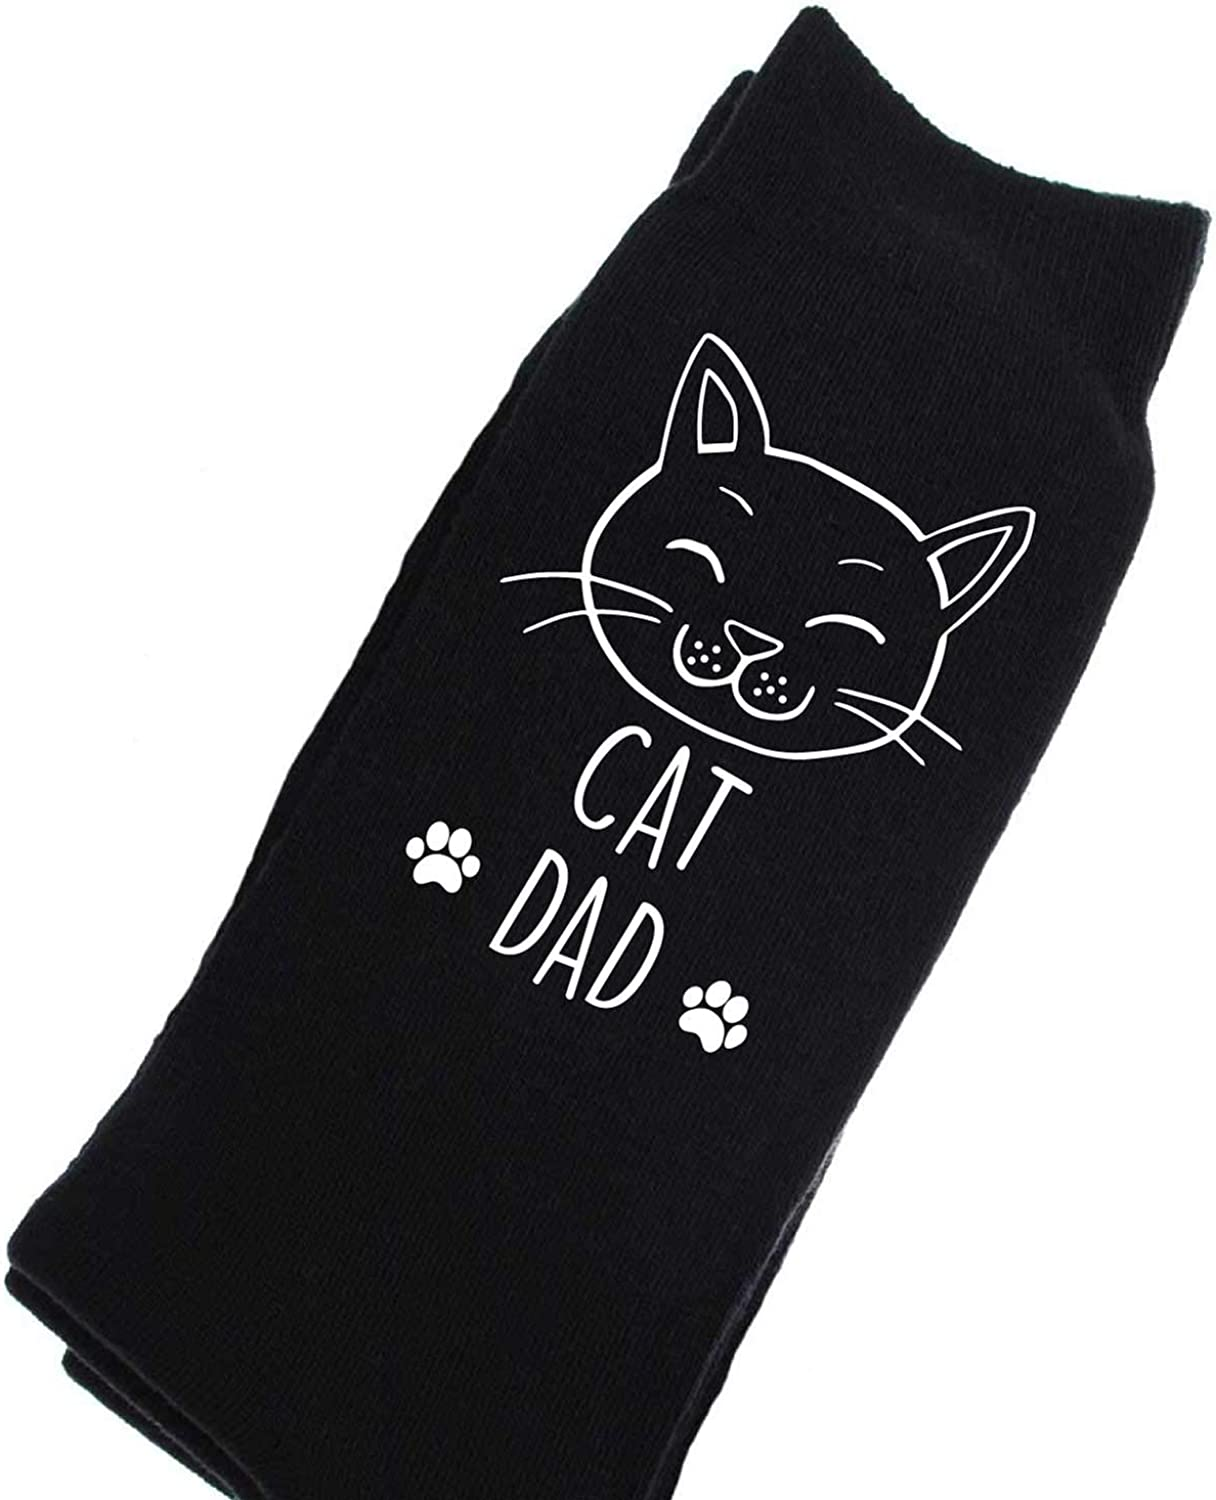 One Size 60 Second Makeover Limited Unisex 60 Second Makeover Mens Cat Dad Black Calf Socks Birthday Christmas Valentines Fathers Day Husband Boyfriend Schwarz